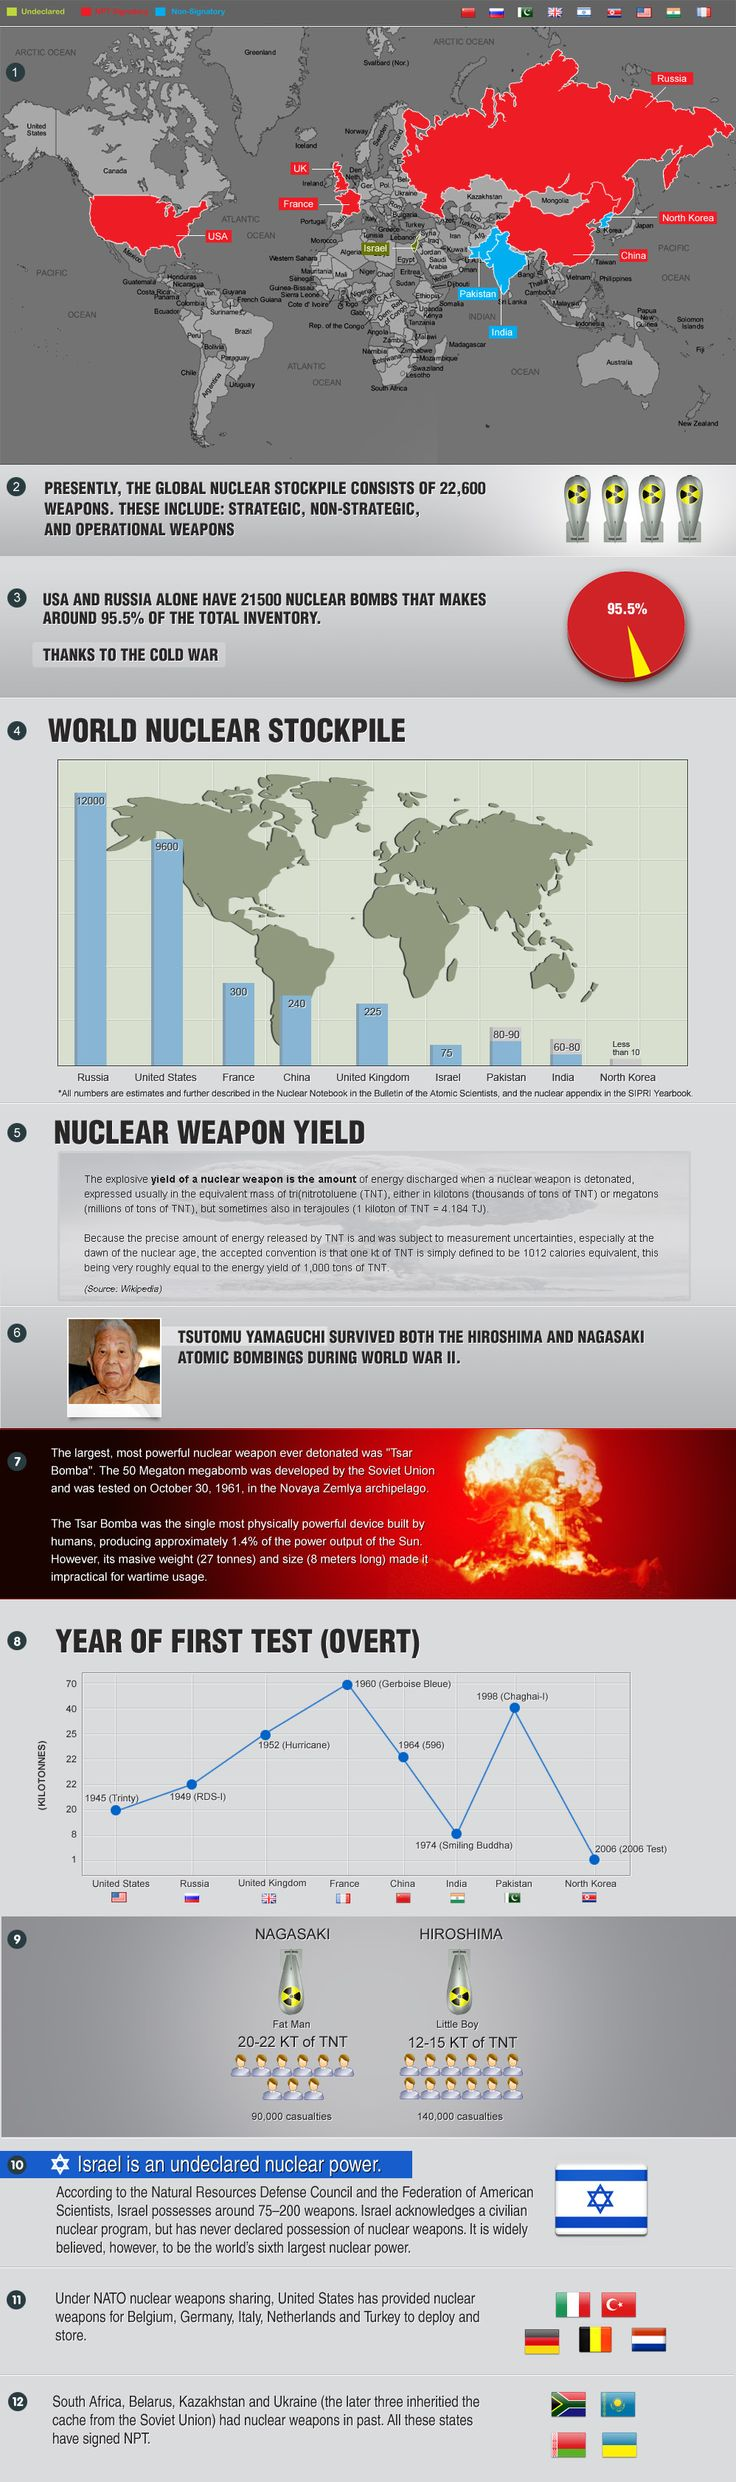 the events leading to the atomic bombs development - the atomic bomb's impression on scientific history this website validates the impressive nature of the development of the atomic bomb as part of scientific history it will discuss the discoveries that scientists made throughout history that were vitally important to the project.